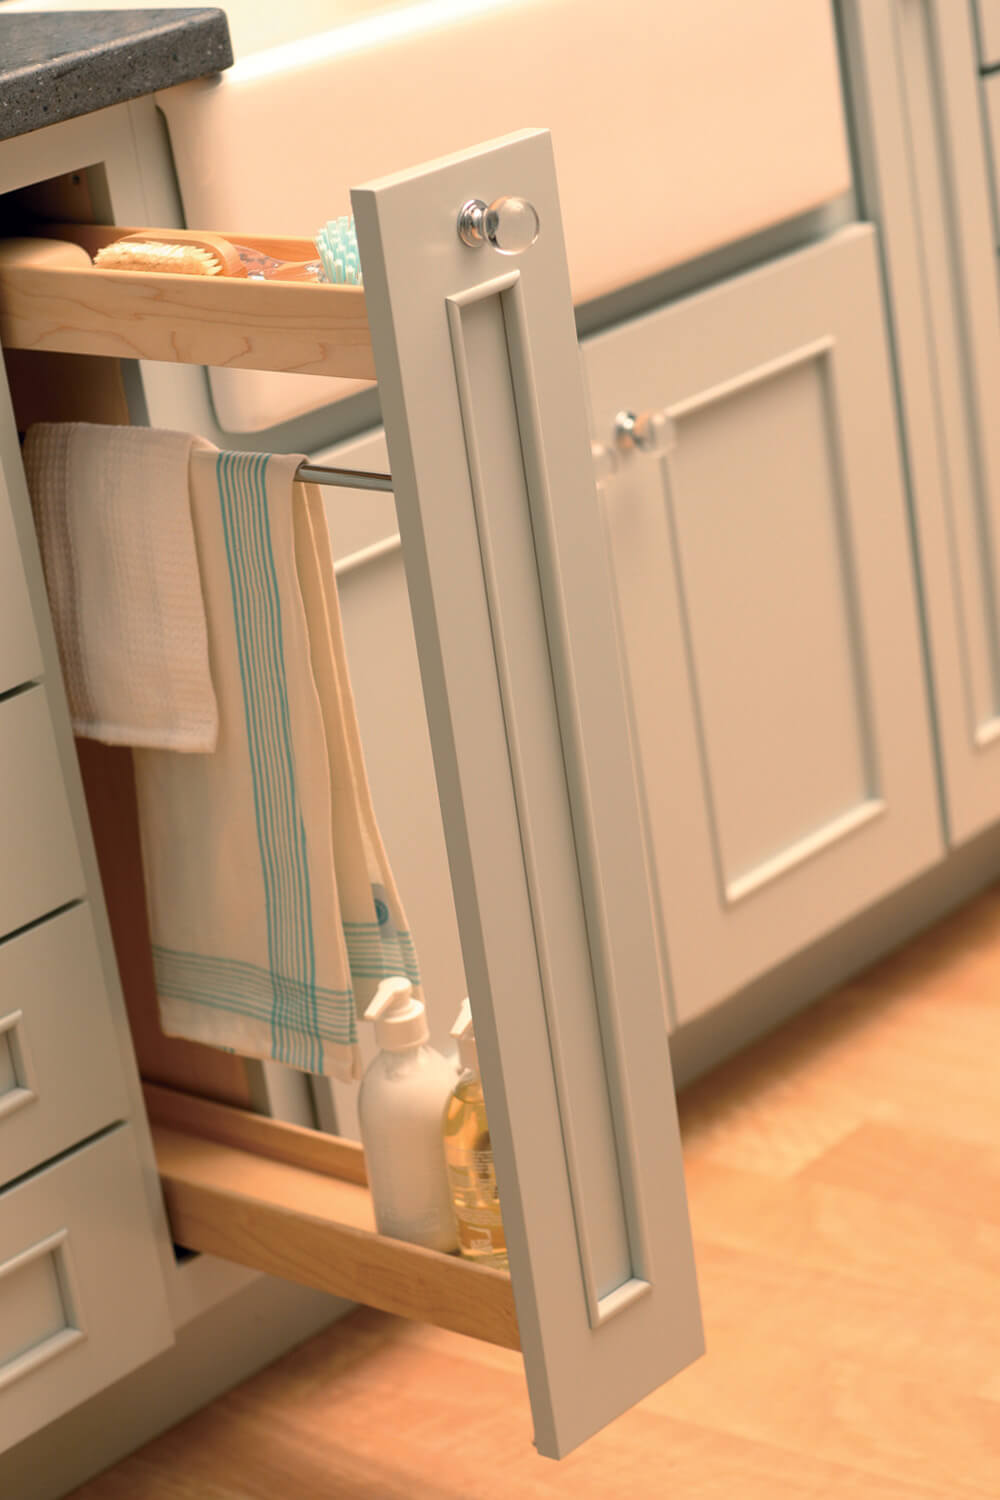 A Pull-Out Towel Bar cabinet by Dura Supreme provides a dedicated space for storing towels, sponges, soaps, and hand-sanitizers next near the sink area.